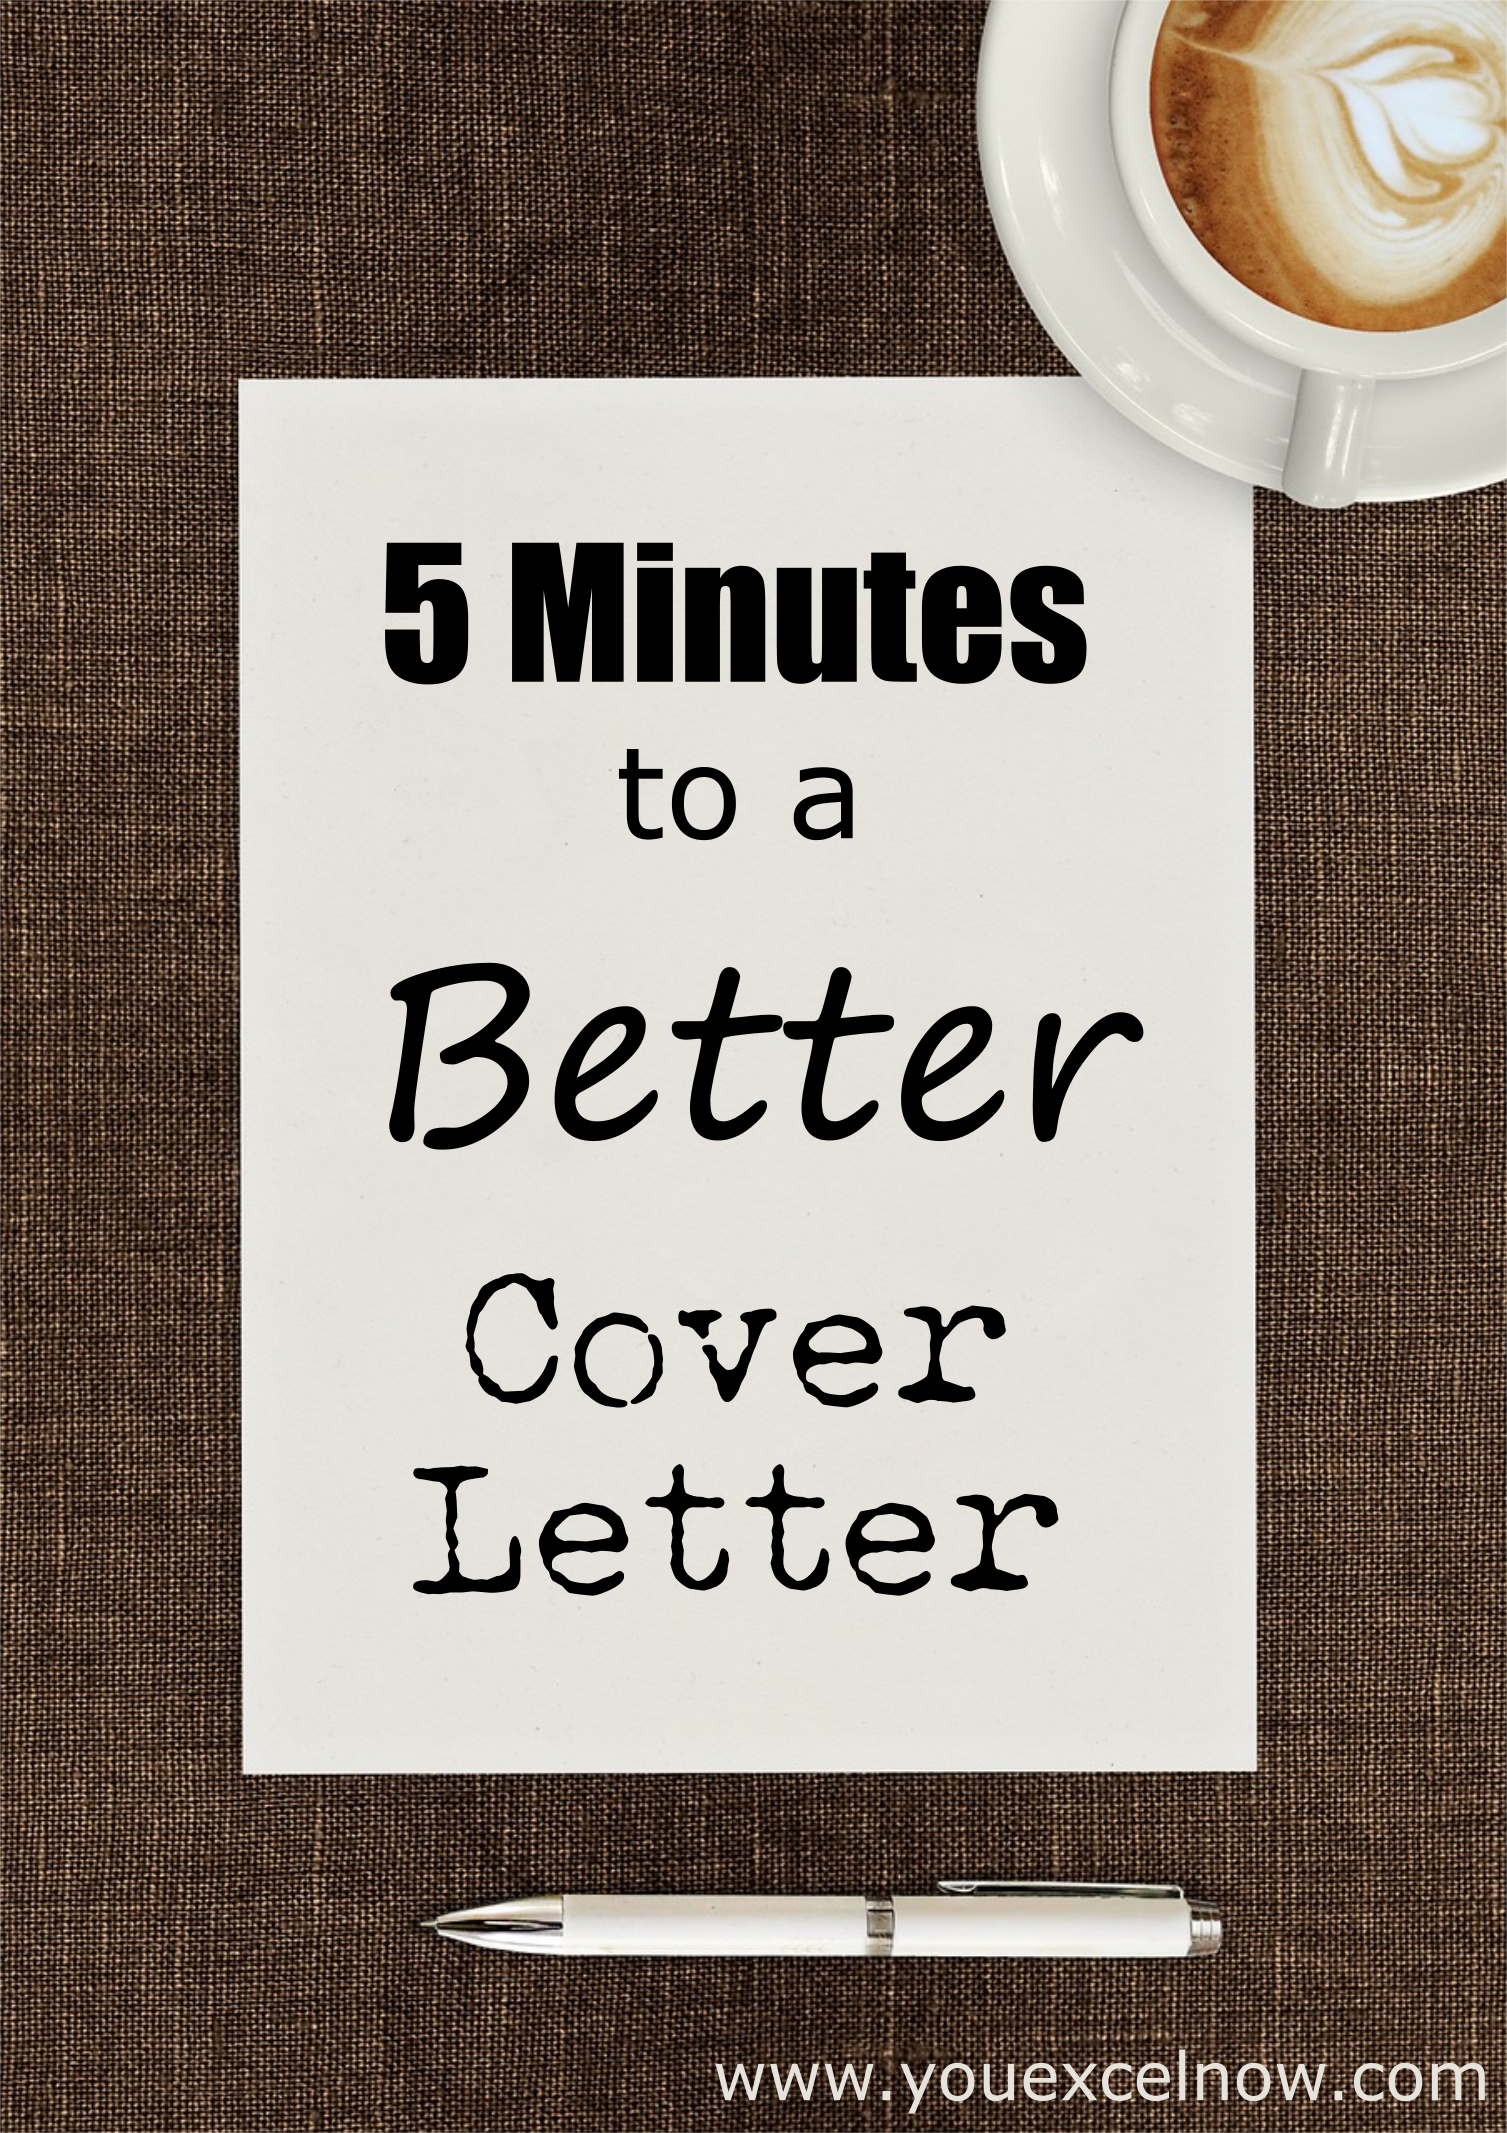 How Do You Write A Cover Letter That Gets Noticed? Seems Like A Daunting  Task, Right?